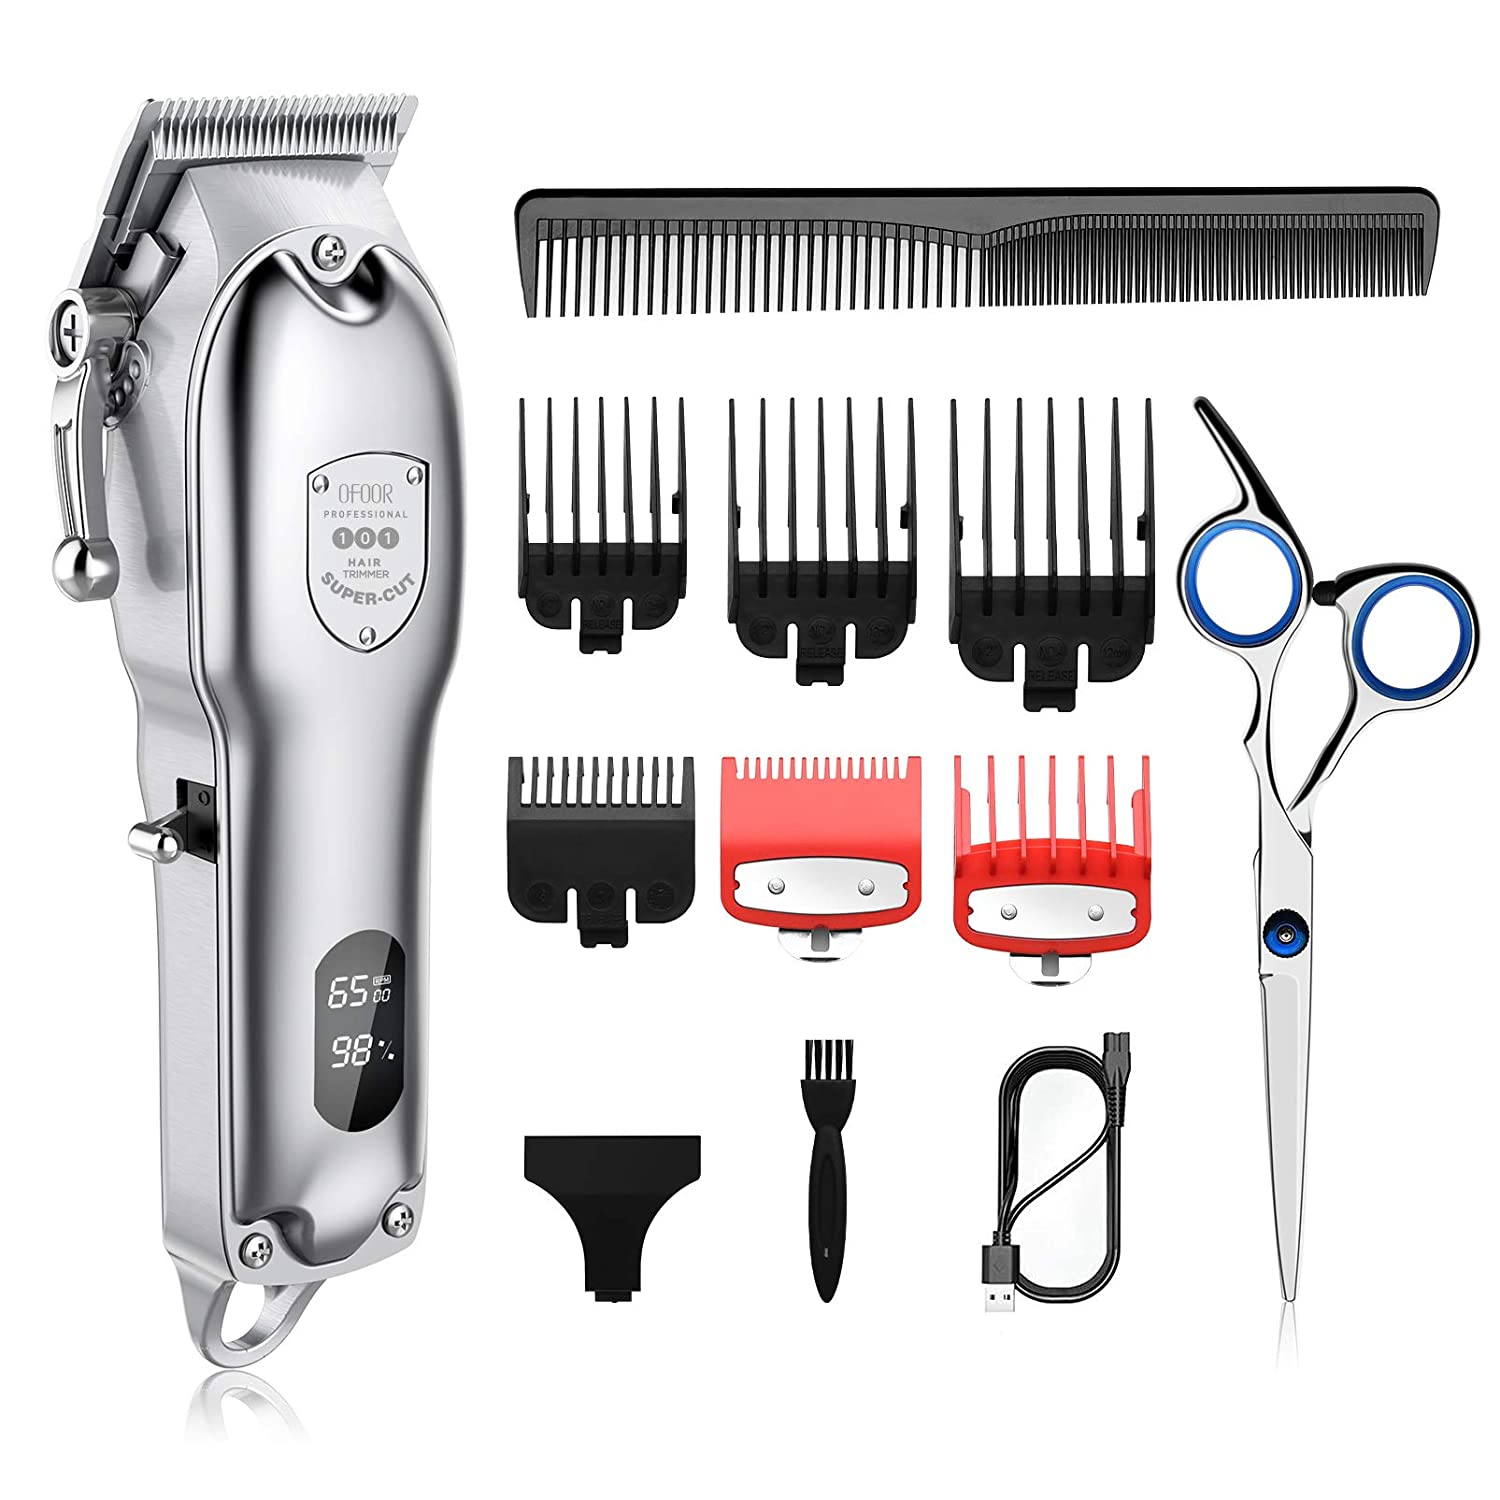 OFOOR Hair Clippers for Men Cutting - Ranking TOP1 Professional Kit Popular products with